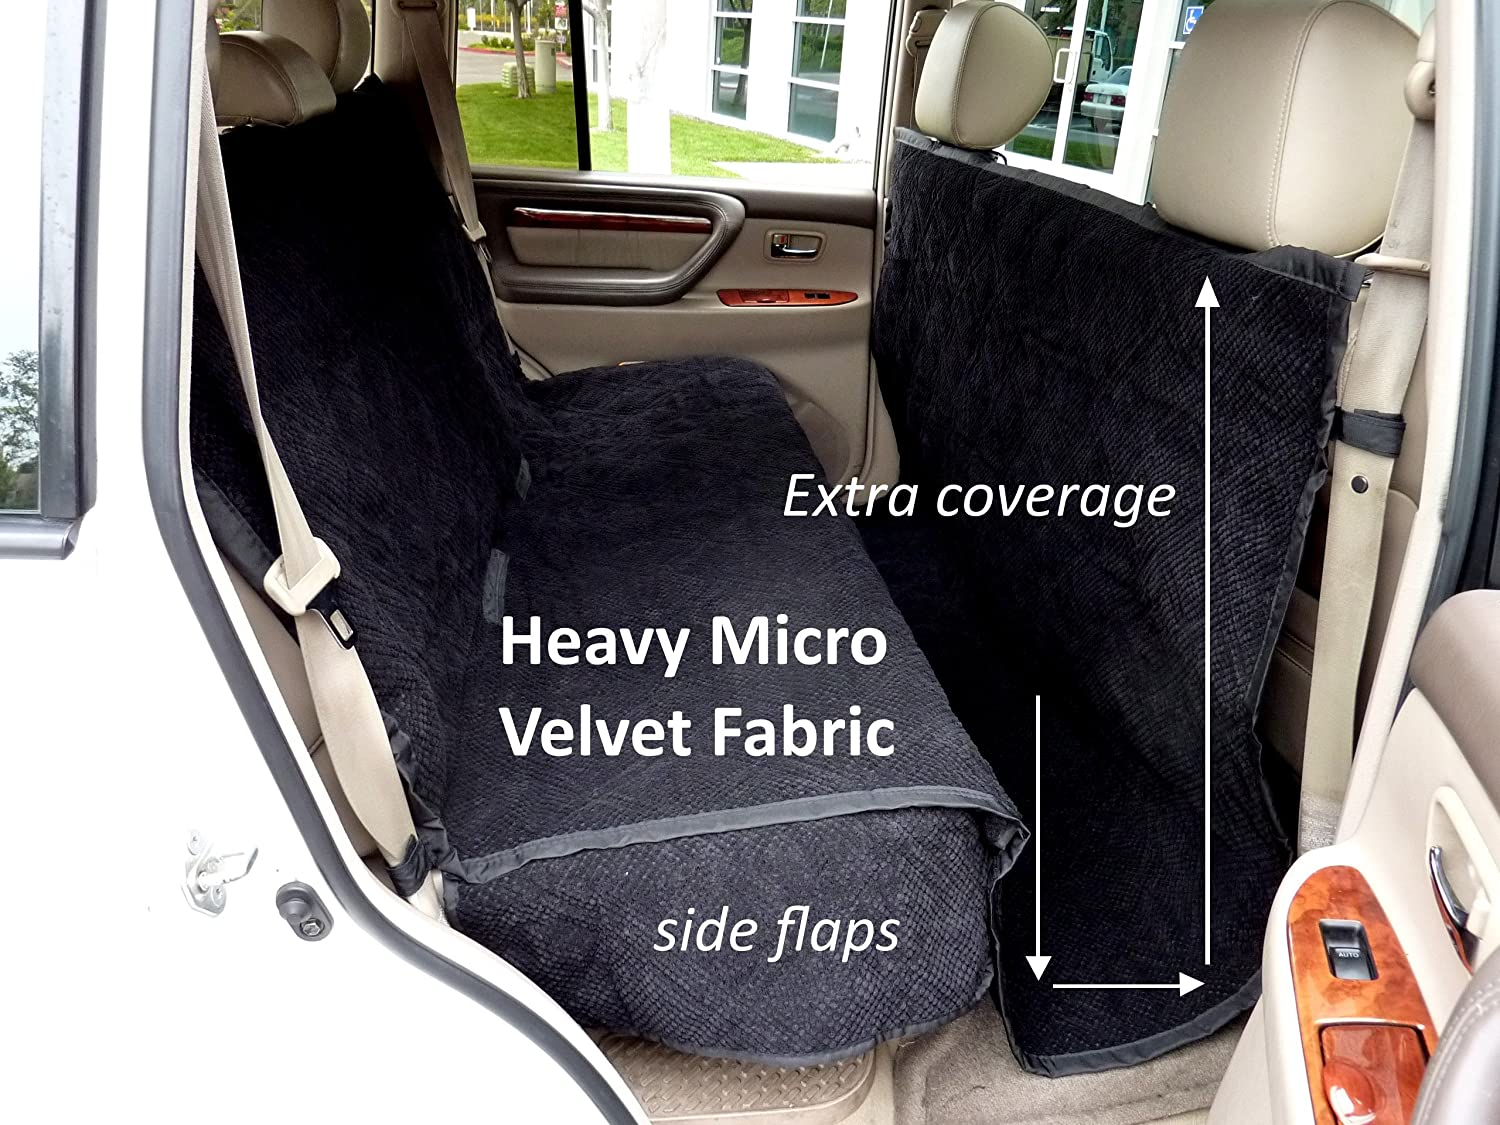 Deluxe Quilted and Padded Dog Car Seat Cover with Non-Slip Back Best for Car Truck and SUV – Make Travel with Your Pet Always an Option – 3 Sizes and Colors Black, Grey, Taupe